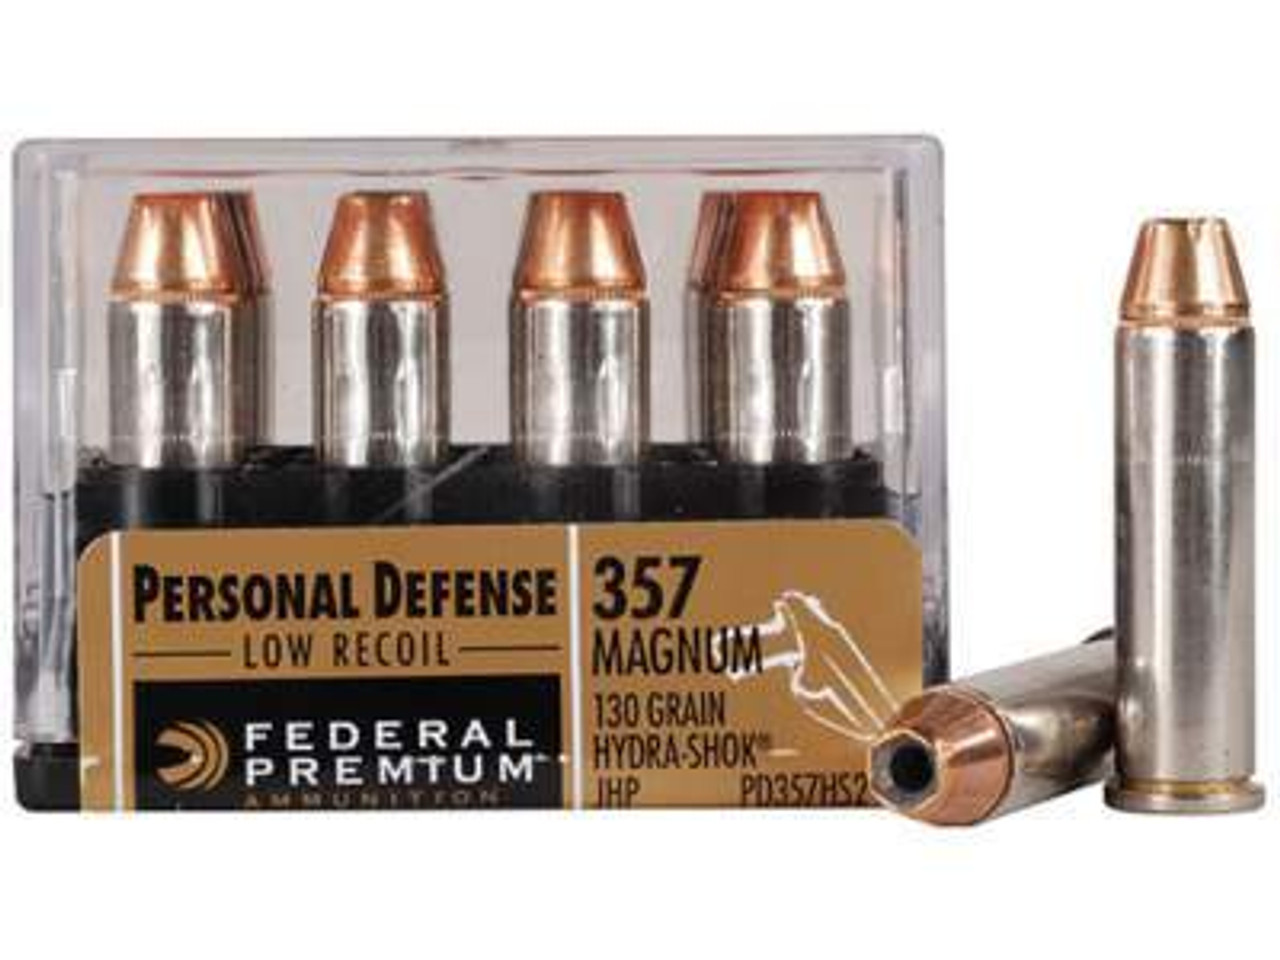 Federal 357 Magnum Hydra-Shok PD357HS2H Low Recoil 130 gr JHP 20 rounds